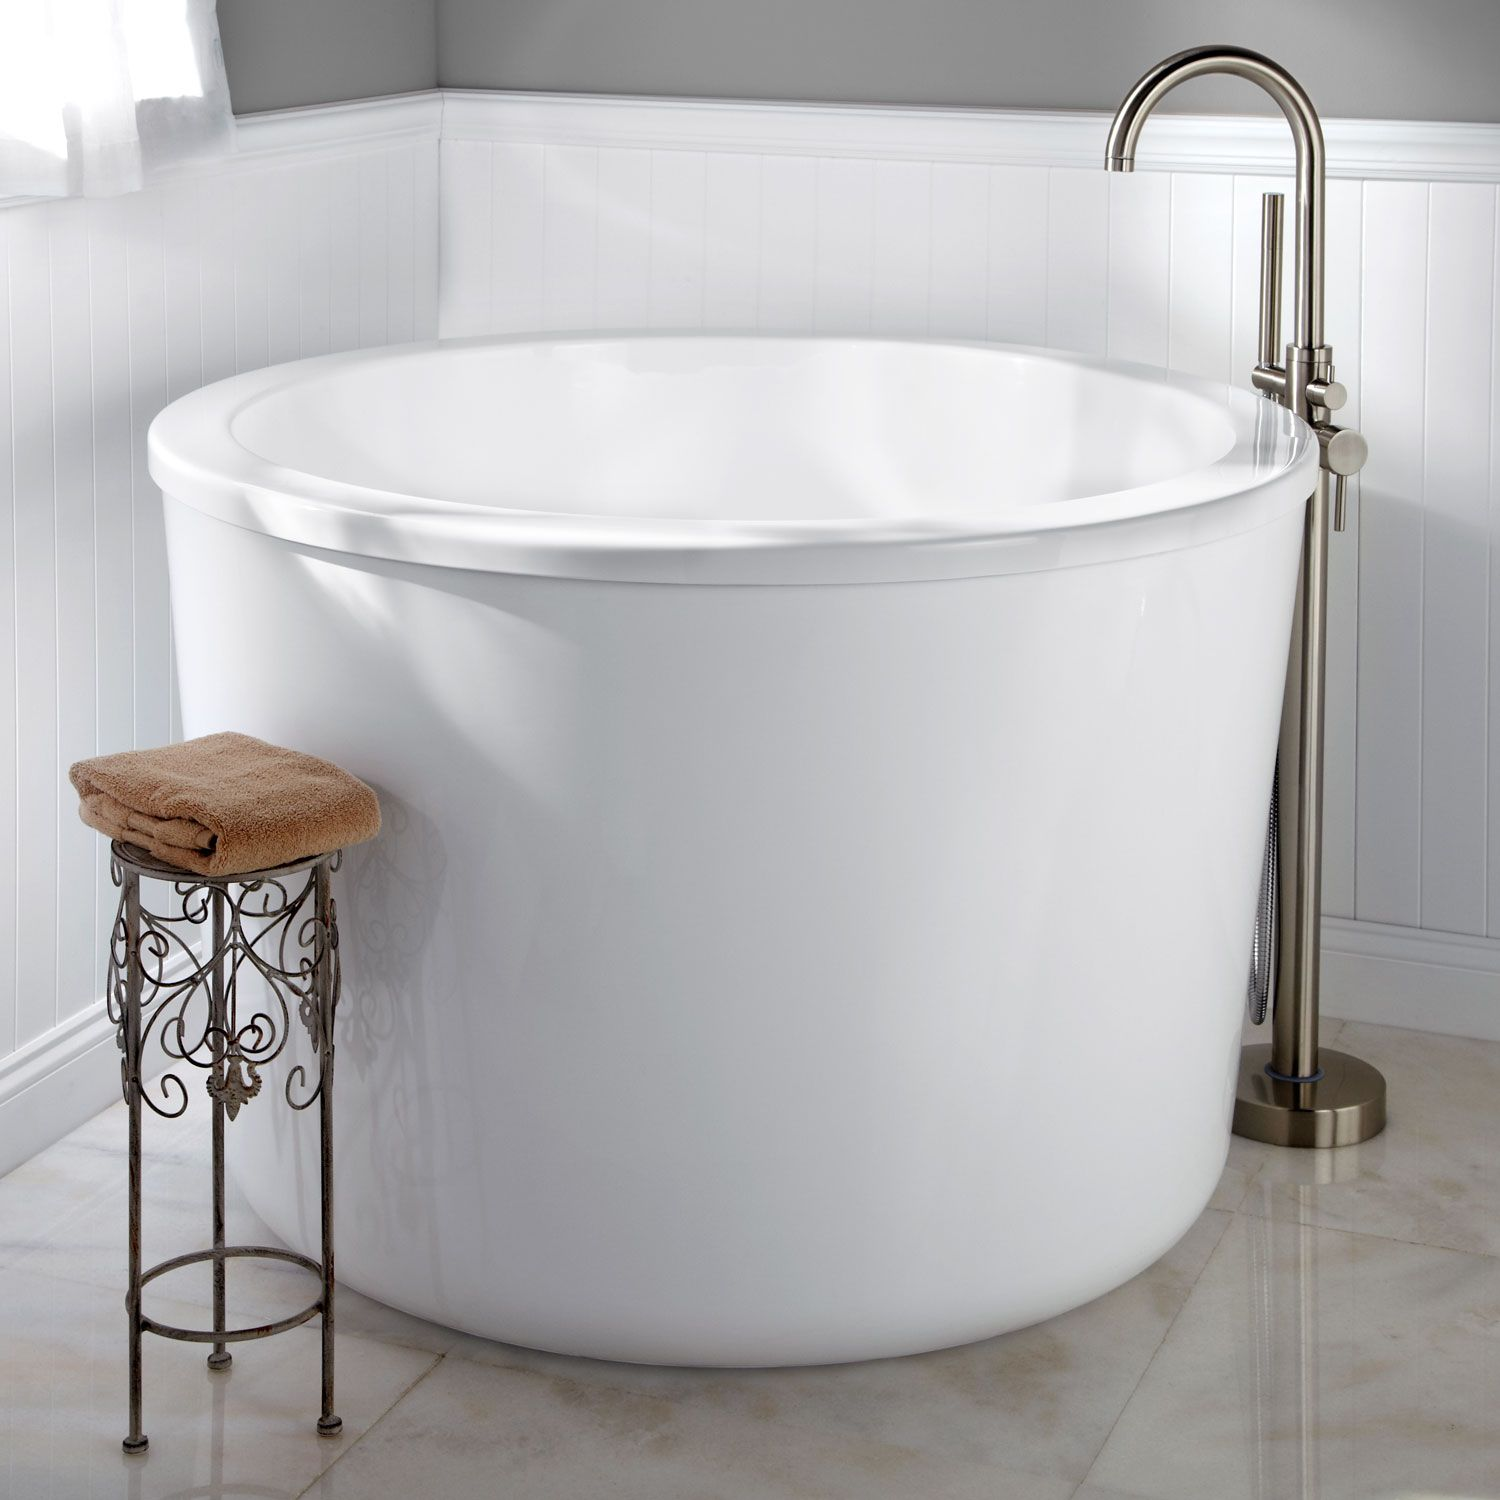 "41"" Siglo Round Japanese Soaking Tub"